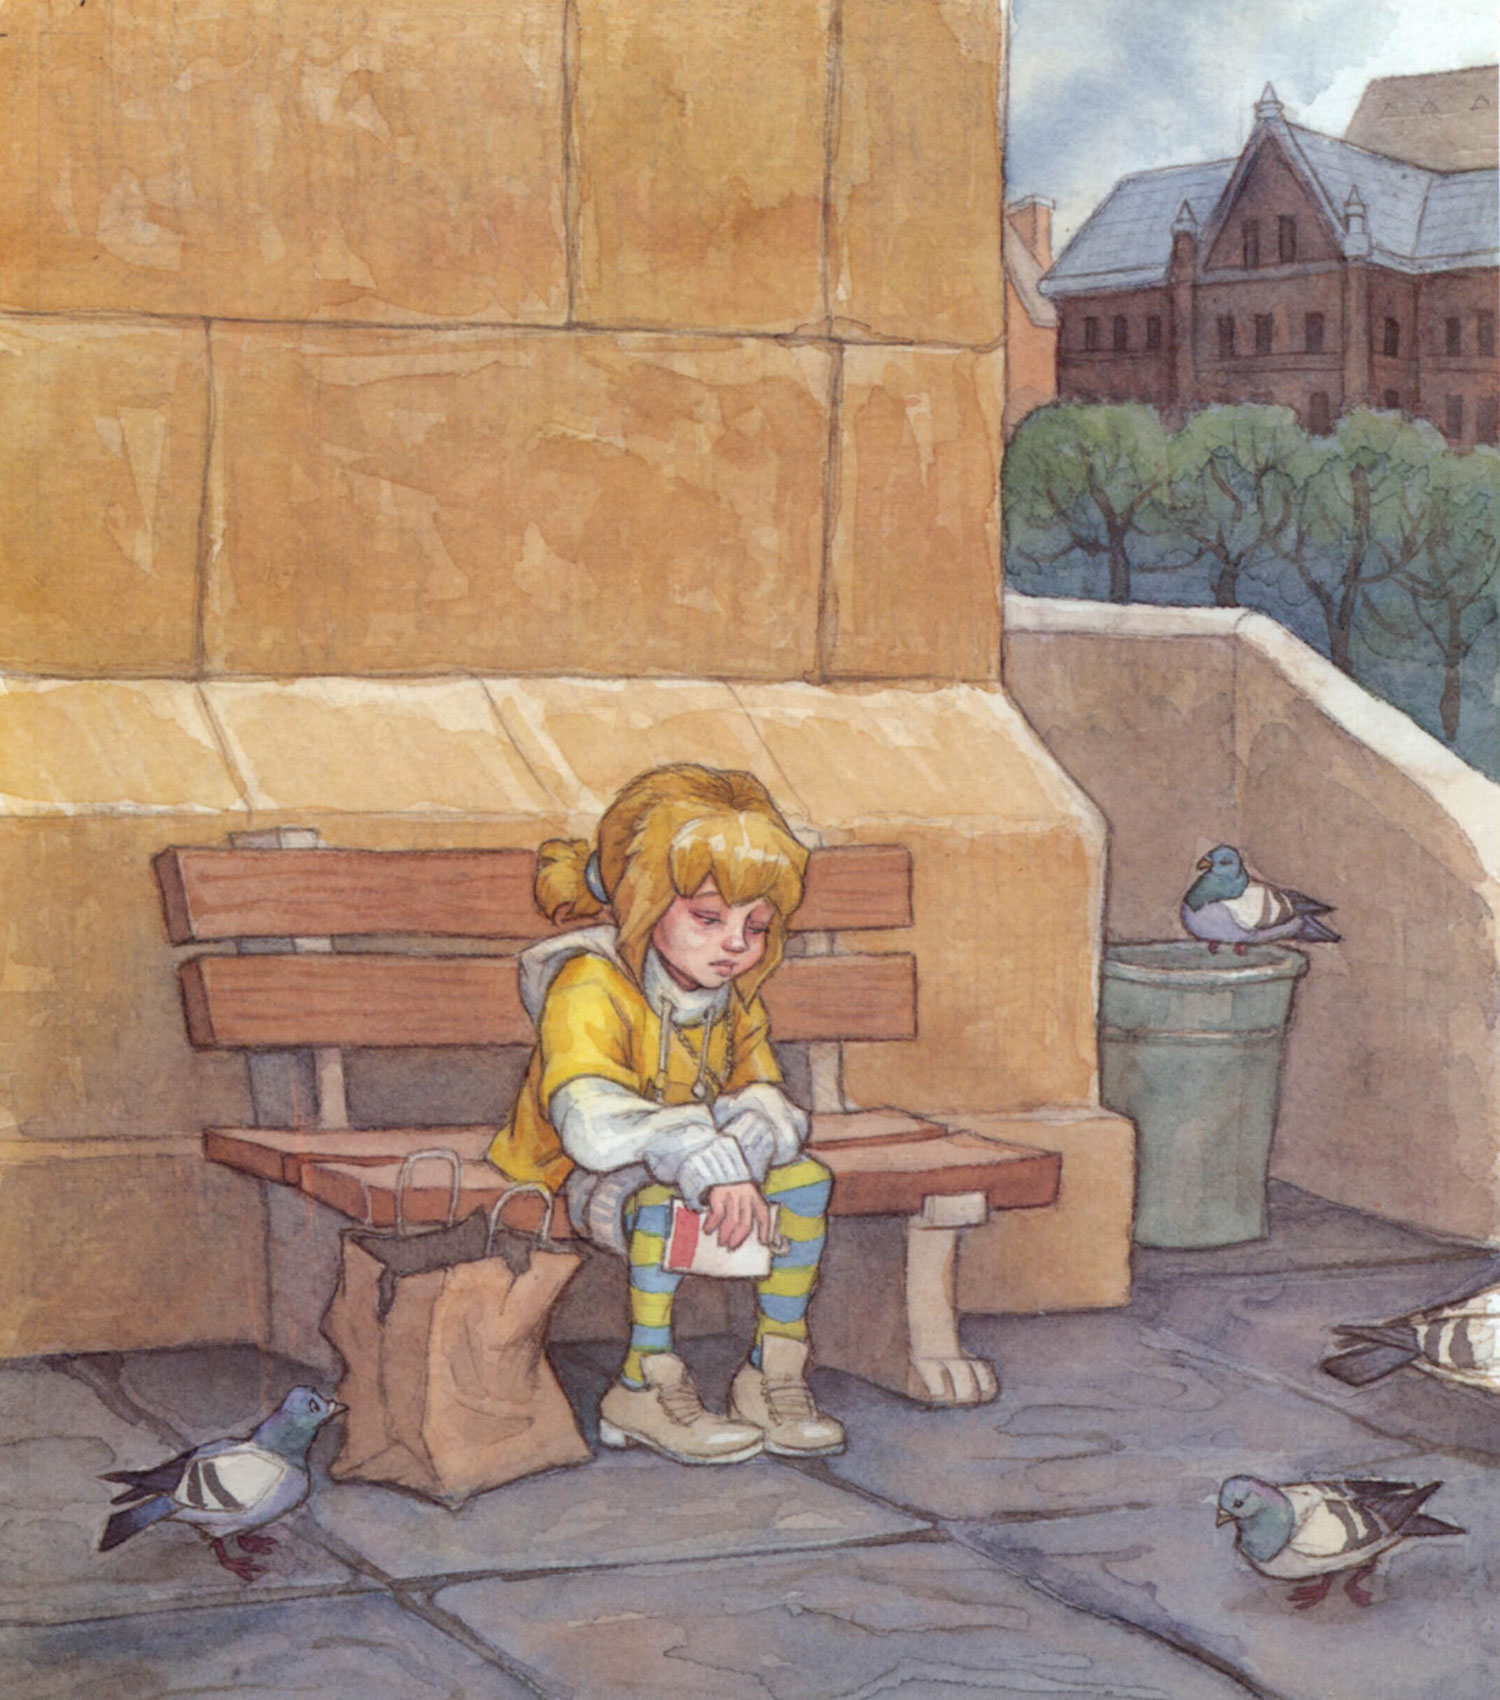 Janey and the Famous Author  Clarion Books, 2005; text by Mary Downing Hahn